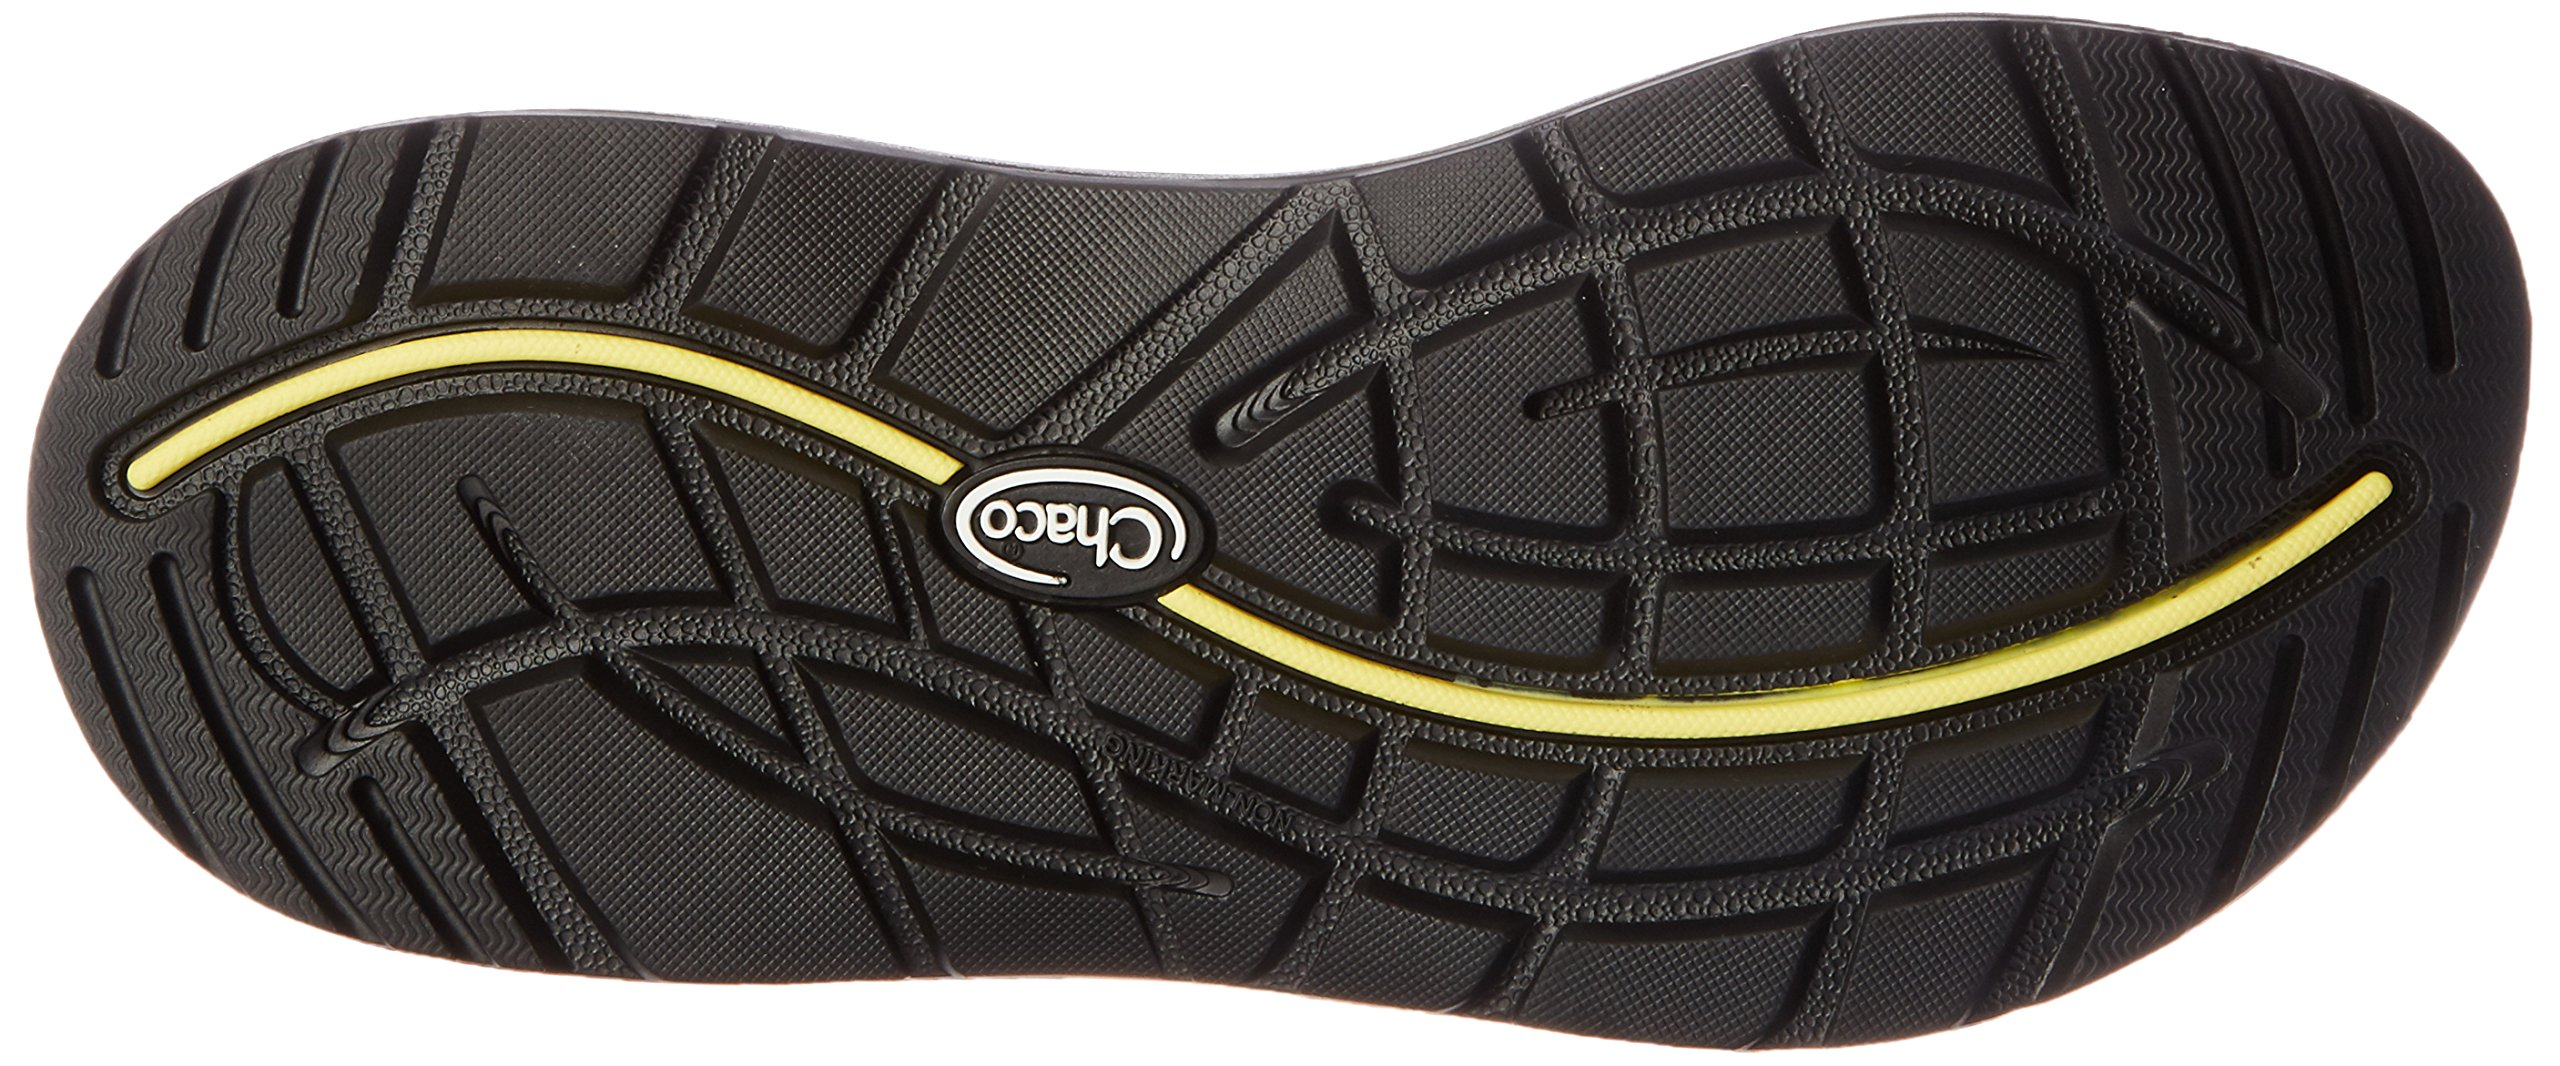 Chaco Women's ZX2 Classic Athletic Sandal, Boost Black, 7 M US by Chaco (Image #3)